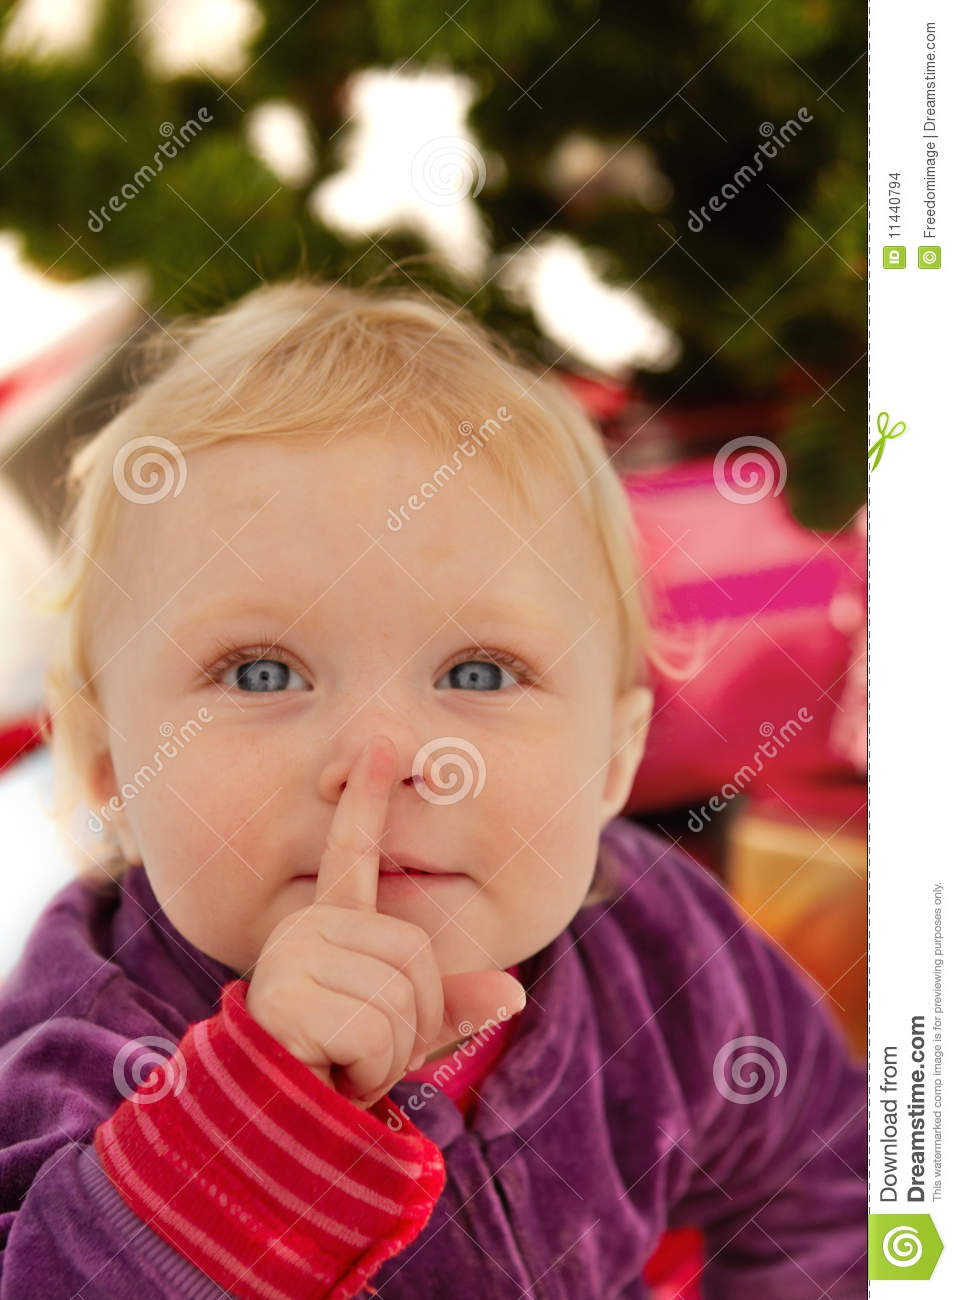 Cute Baby Saying Shhh - At Christmas Stock Images - Image: 11440794